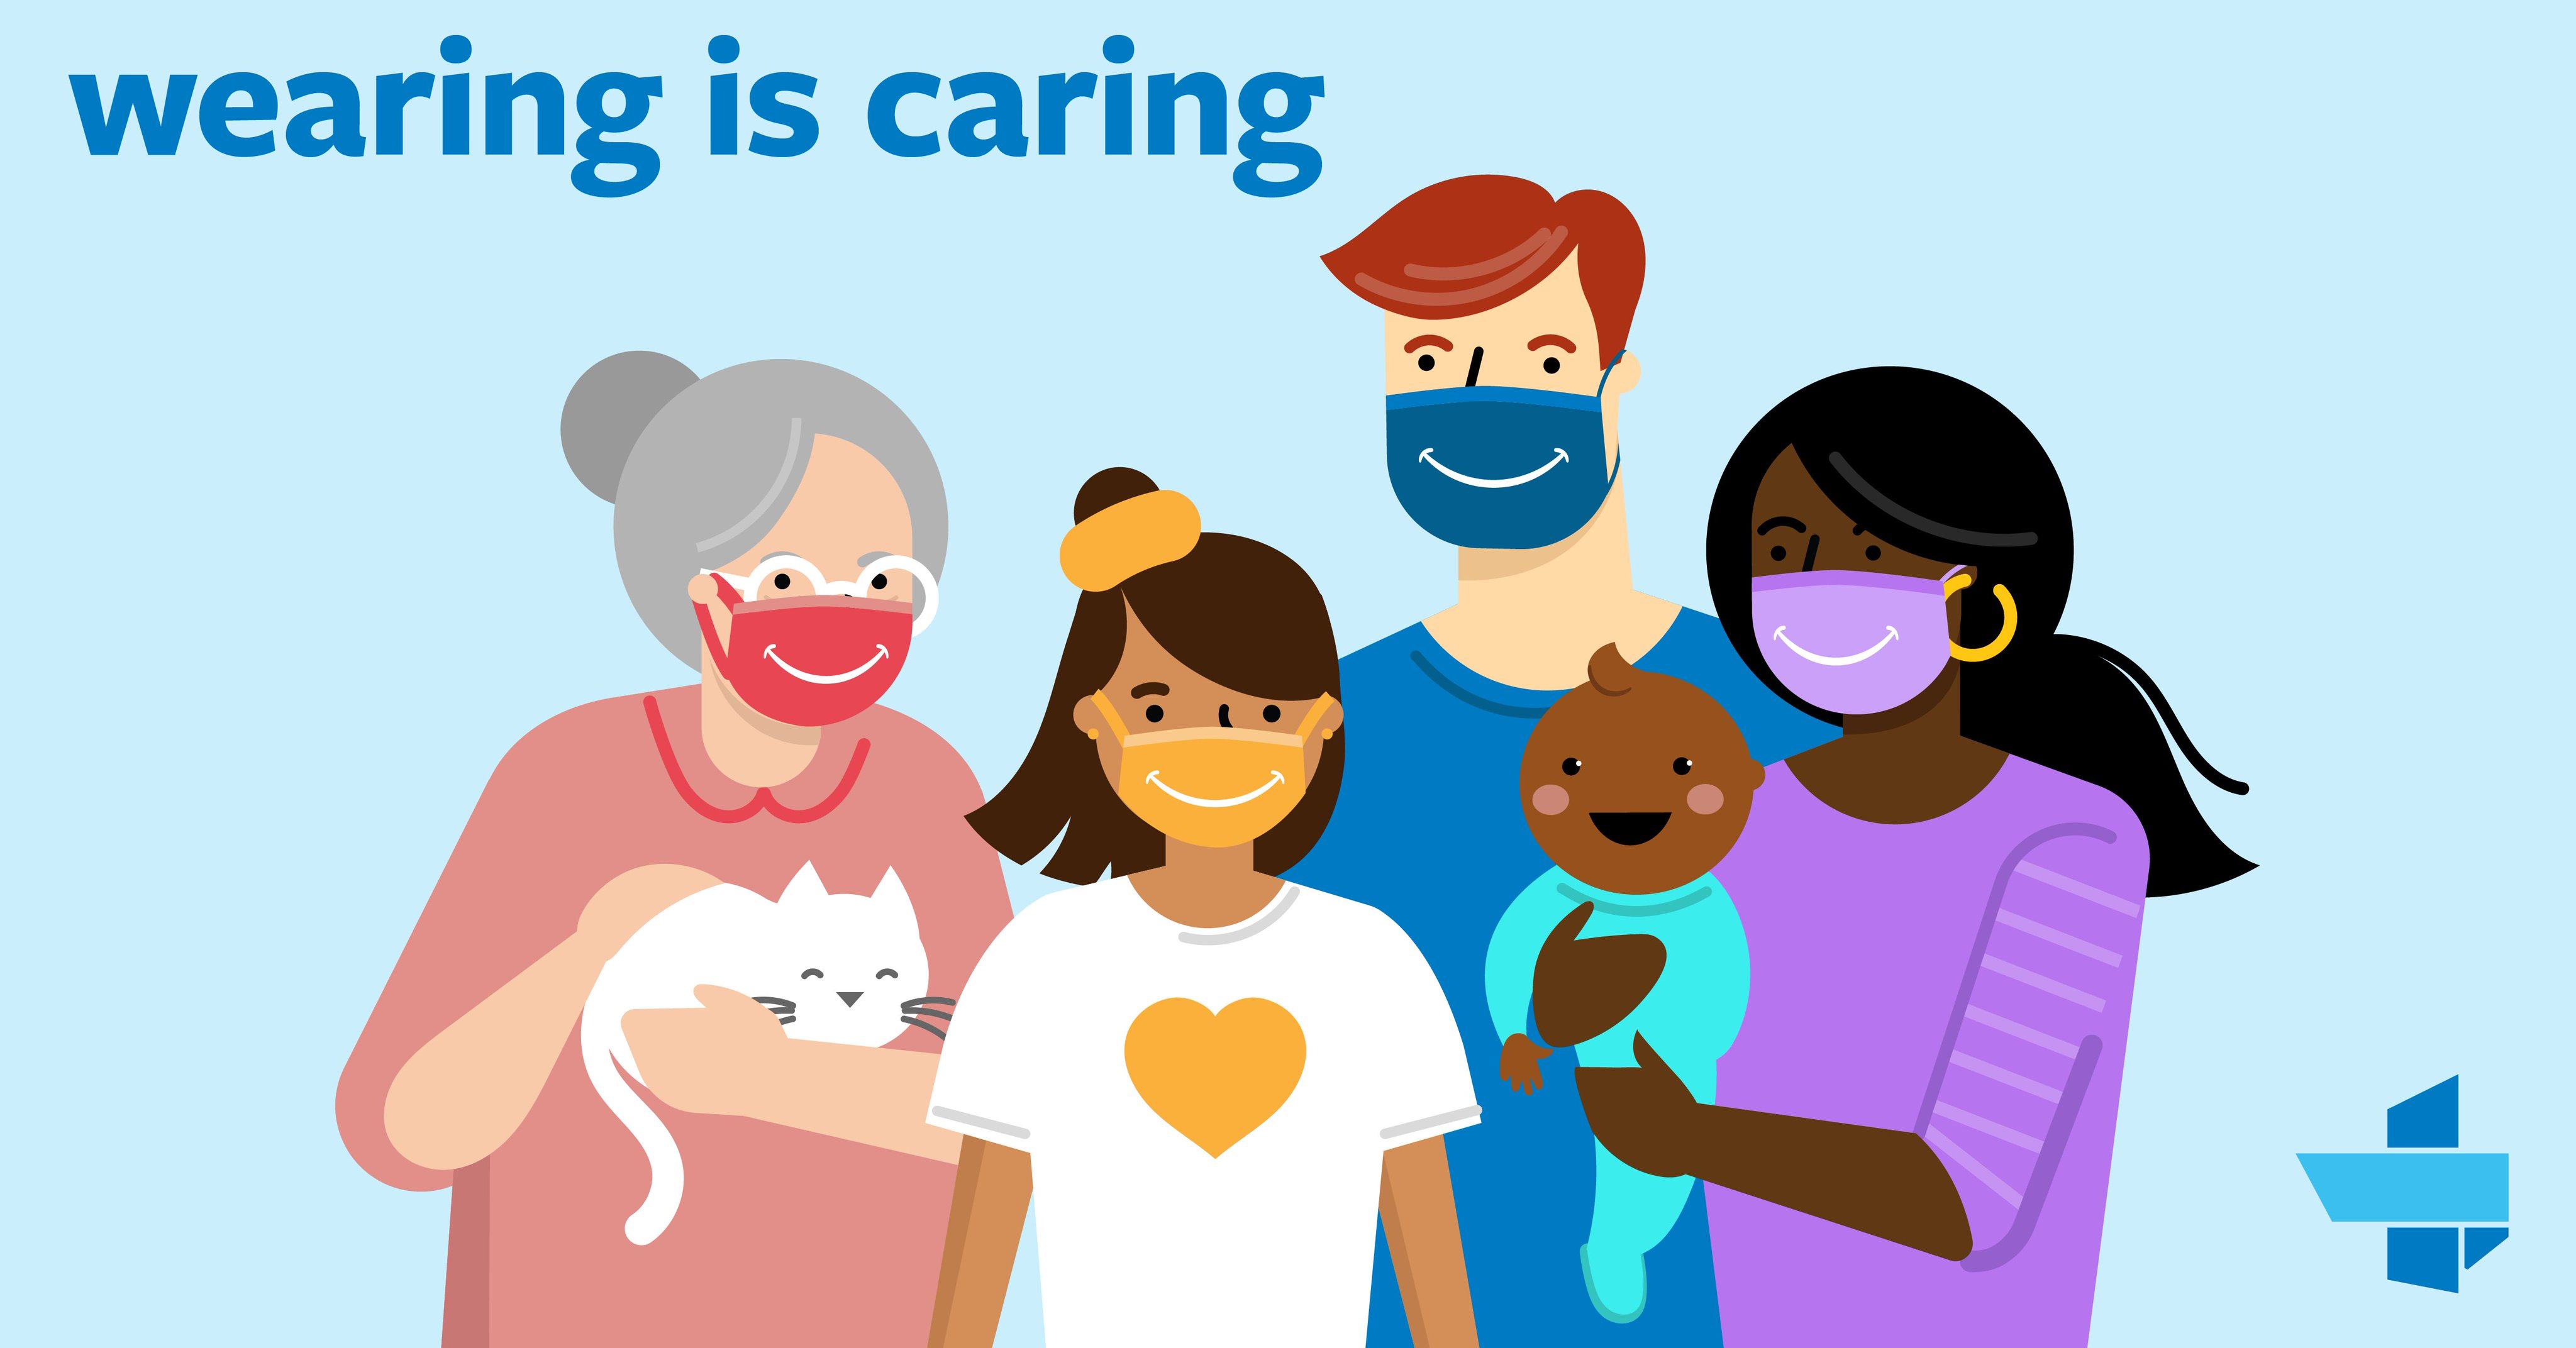 From The Texas Hospital Association: Wearing a mask helps keep #COVID19 from spreading. Wear a mask and protect your fellow Texans.